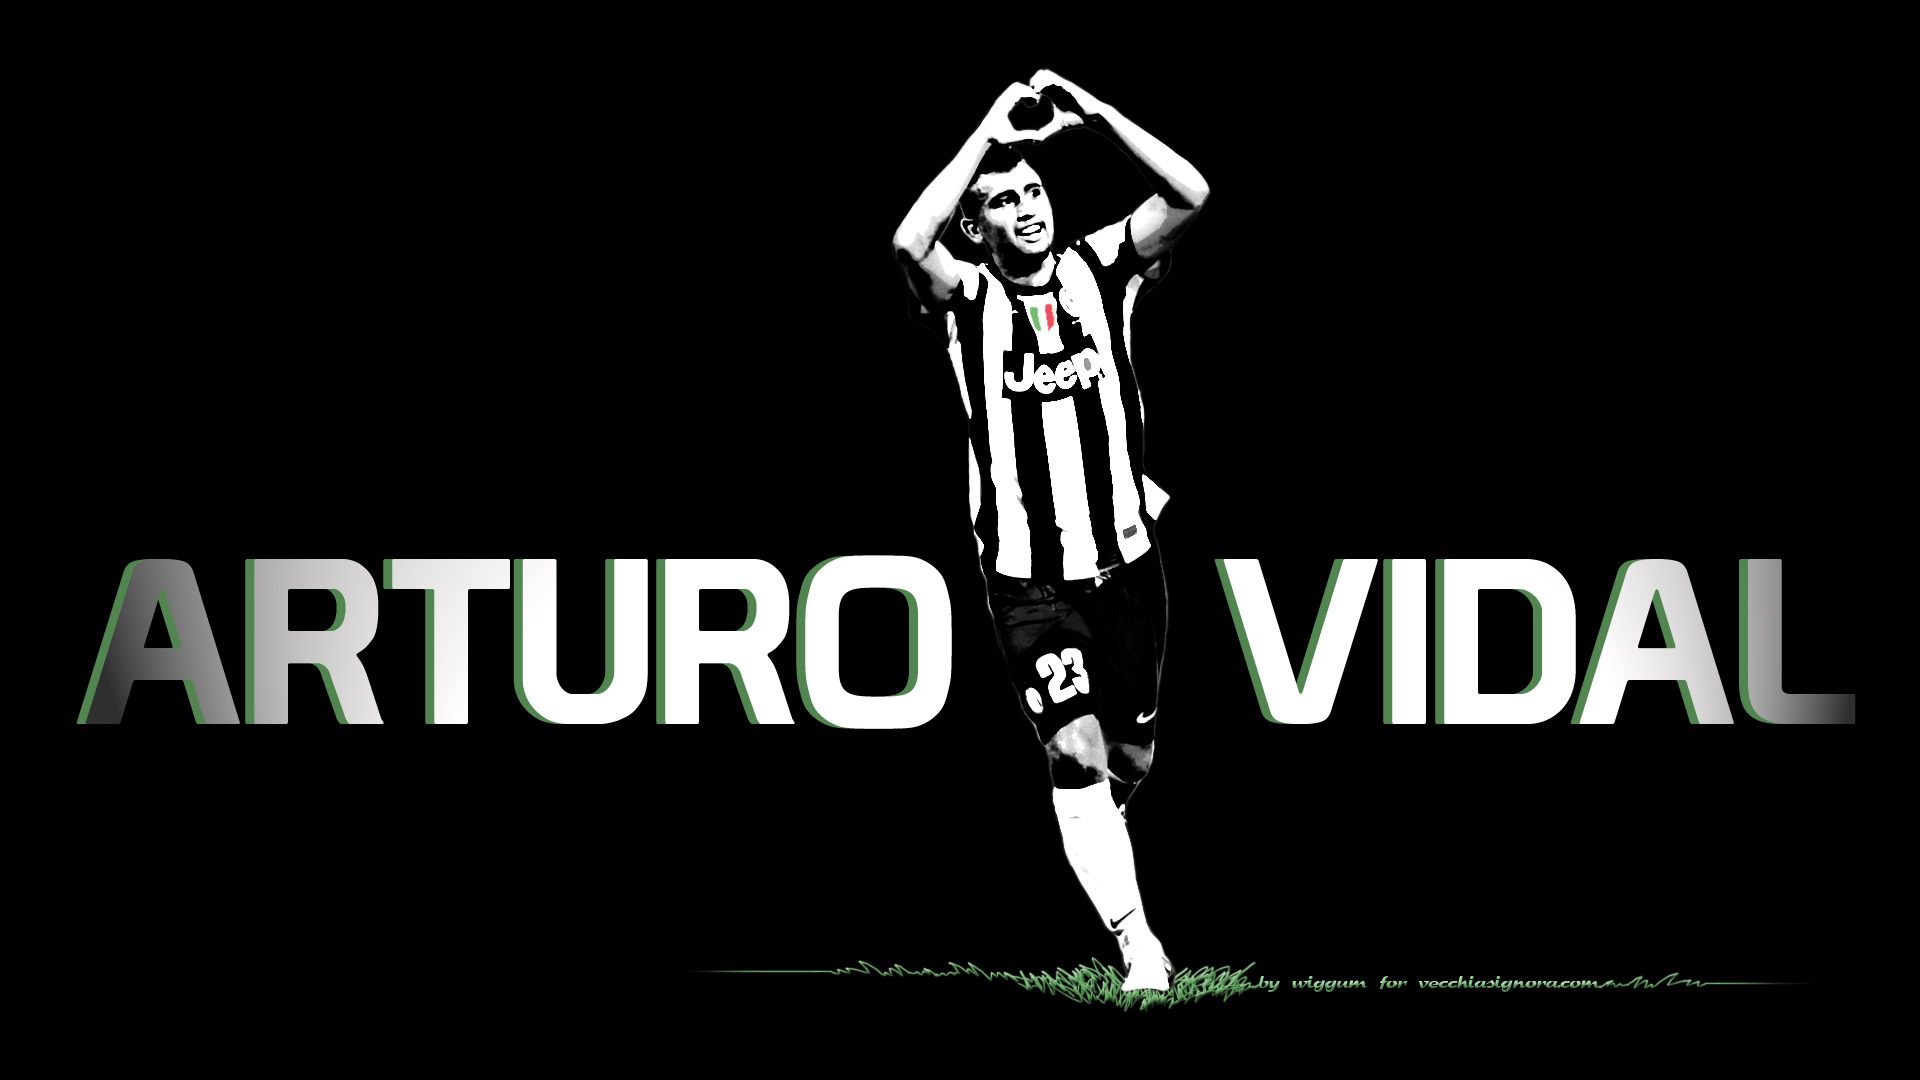 Juventus Wallpaper for Computer - WallpaperSafari